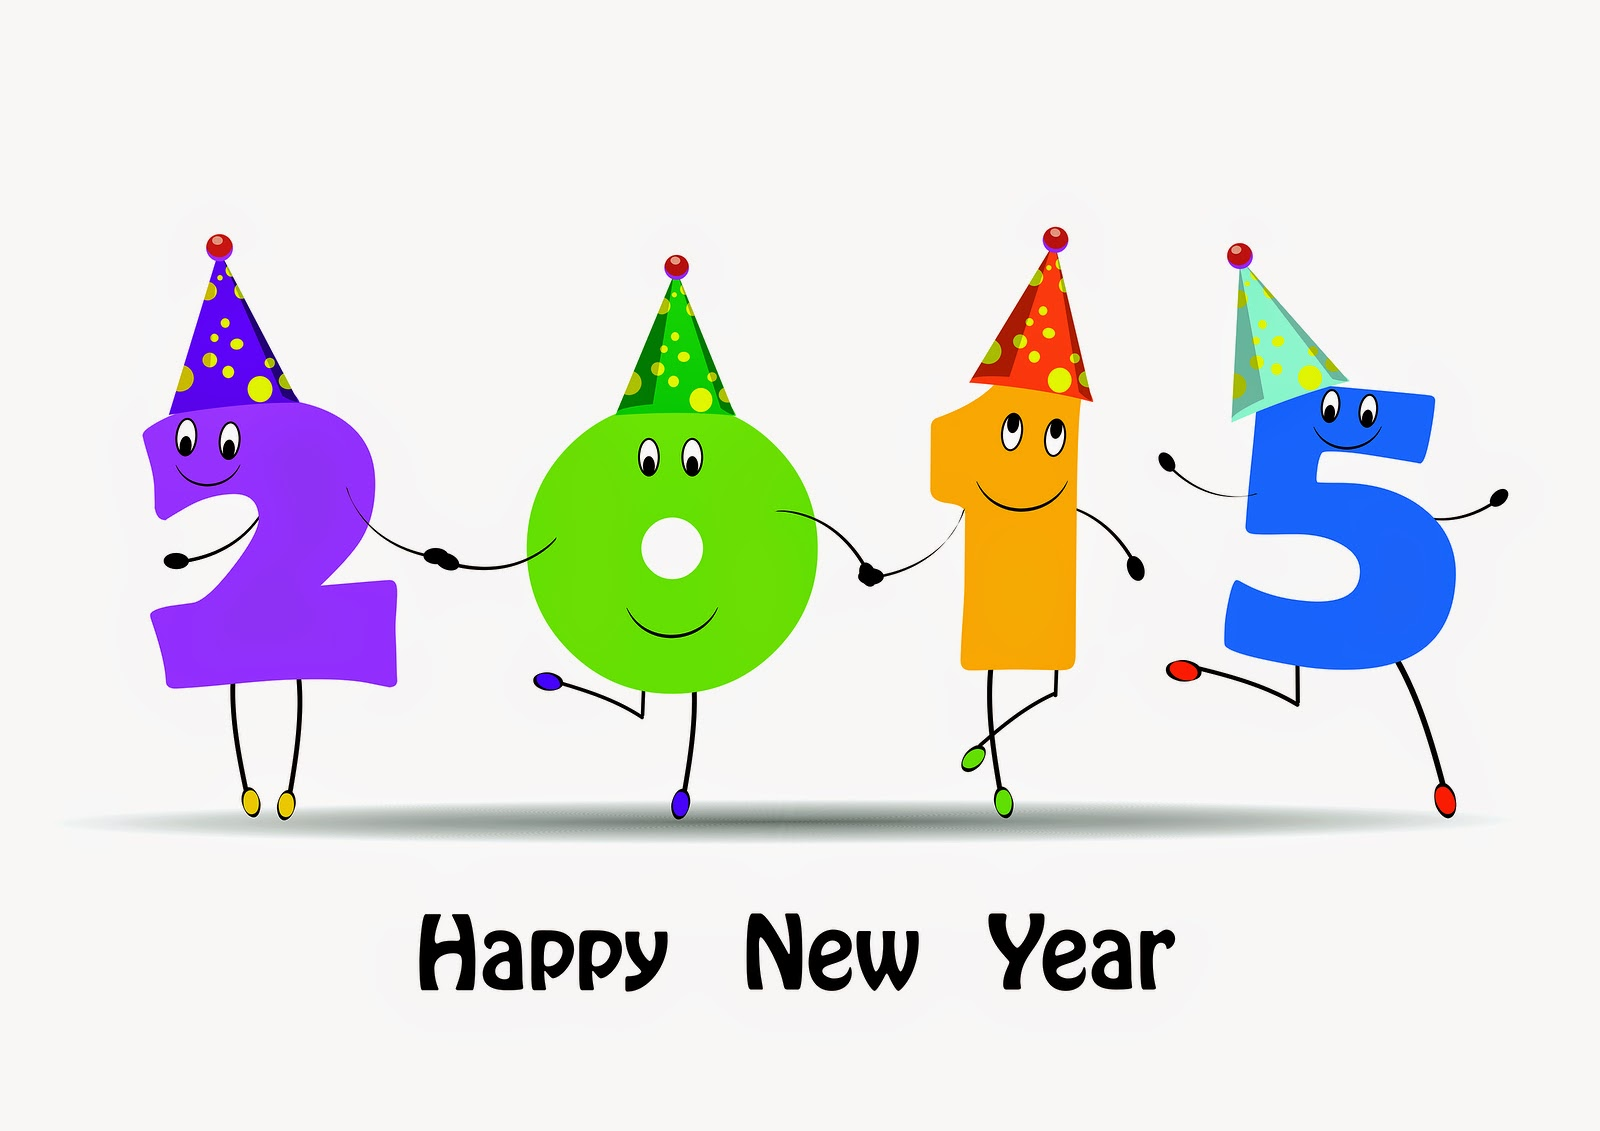 Happy New Year 2015, part 4